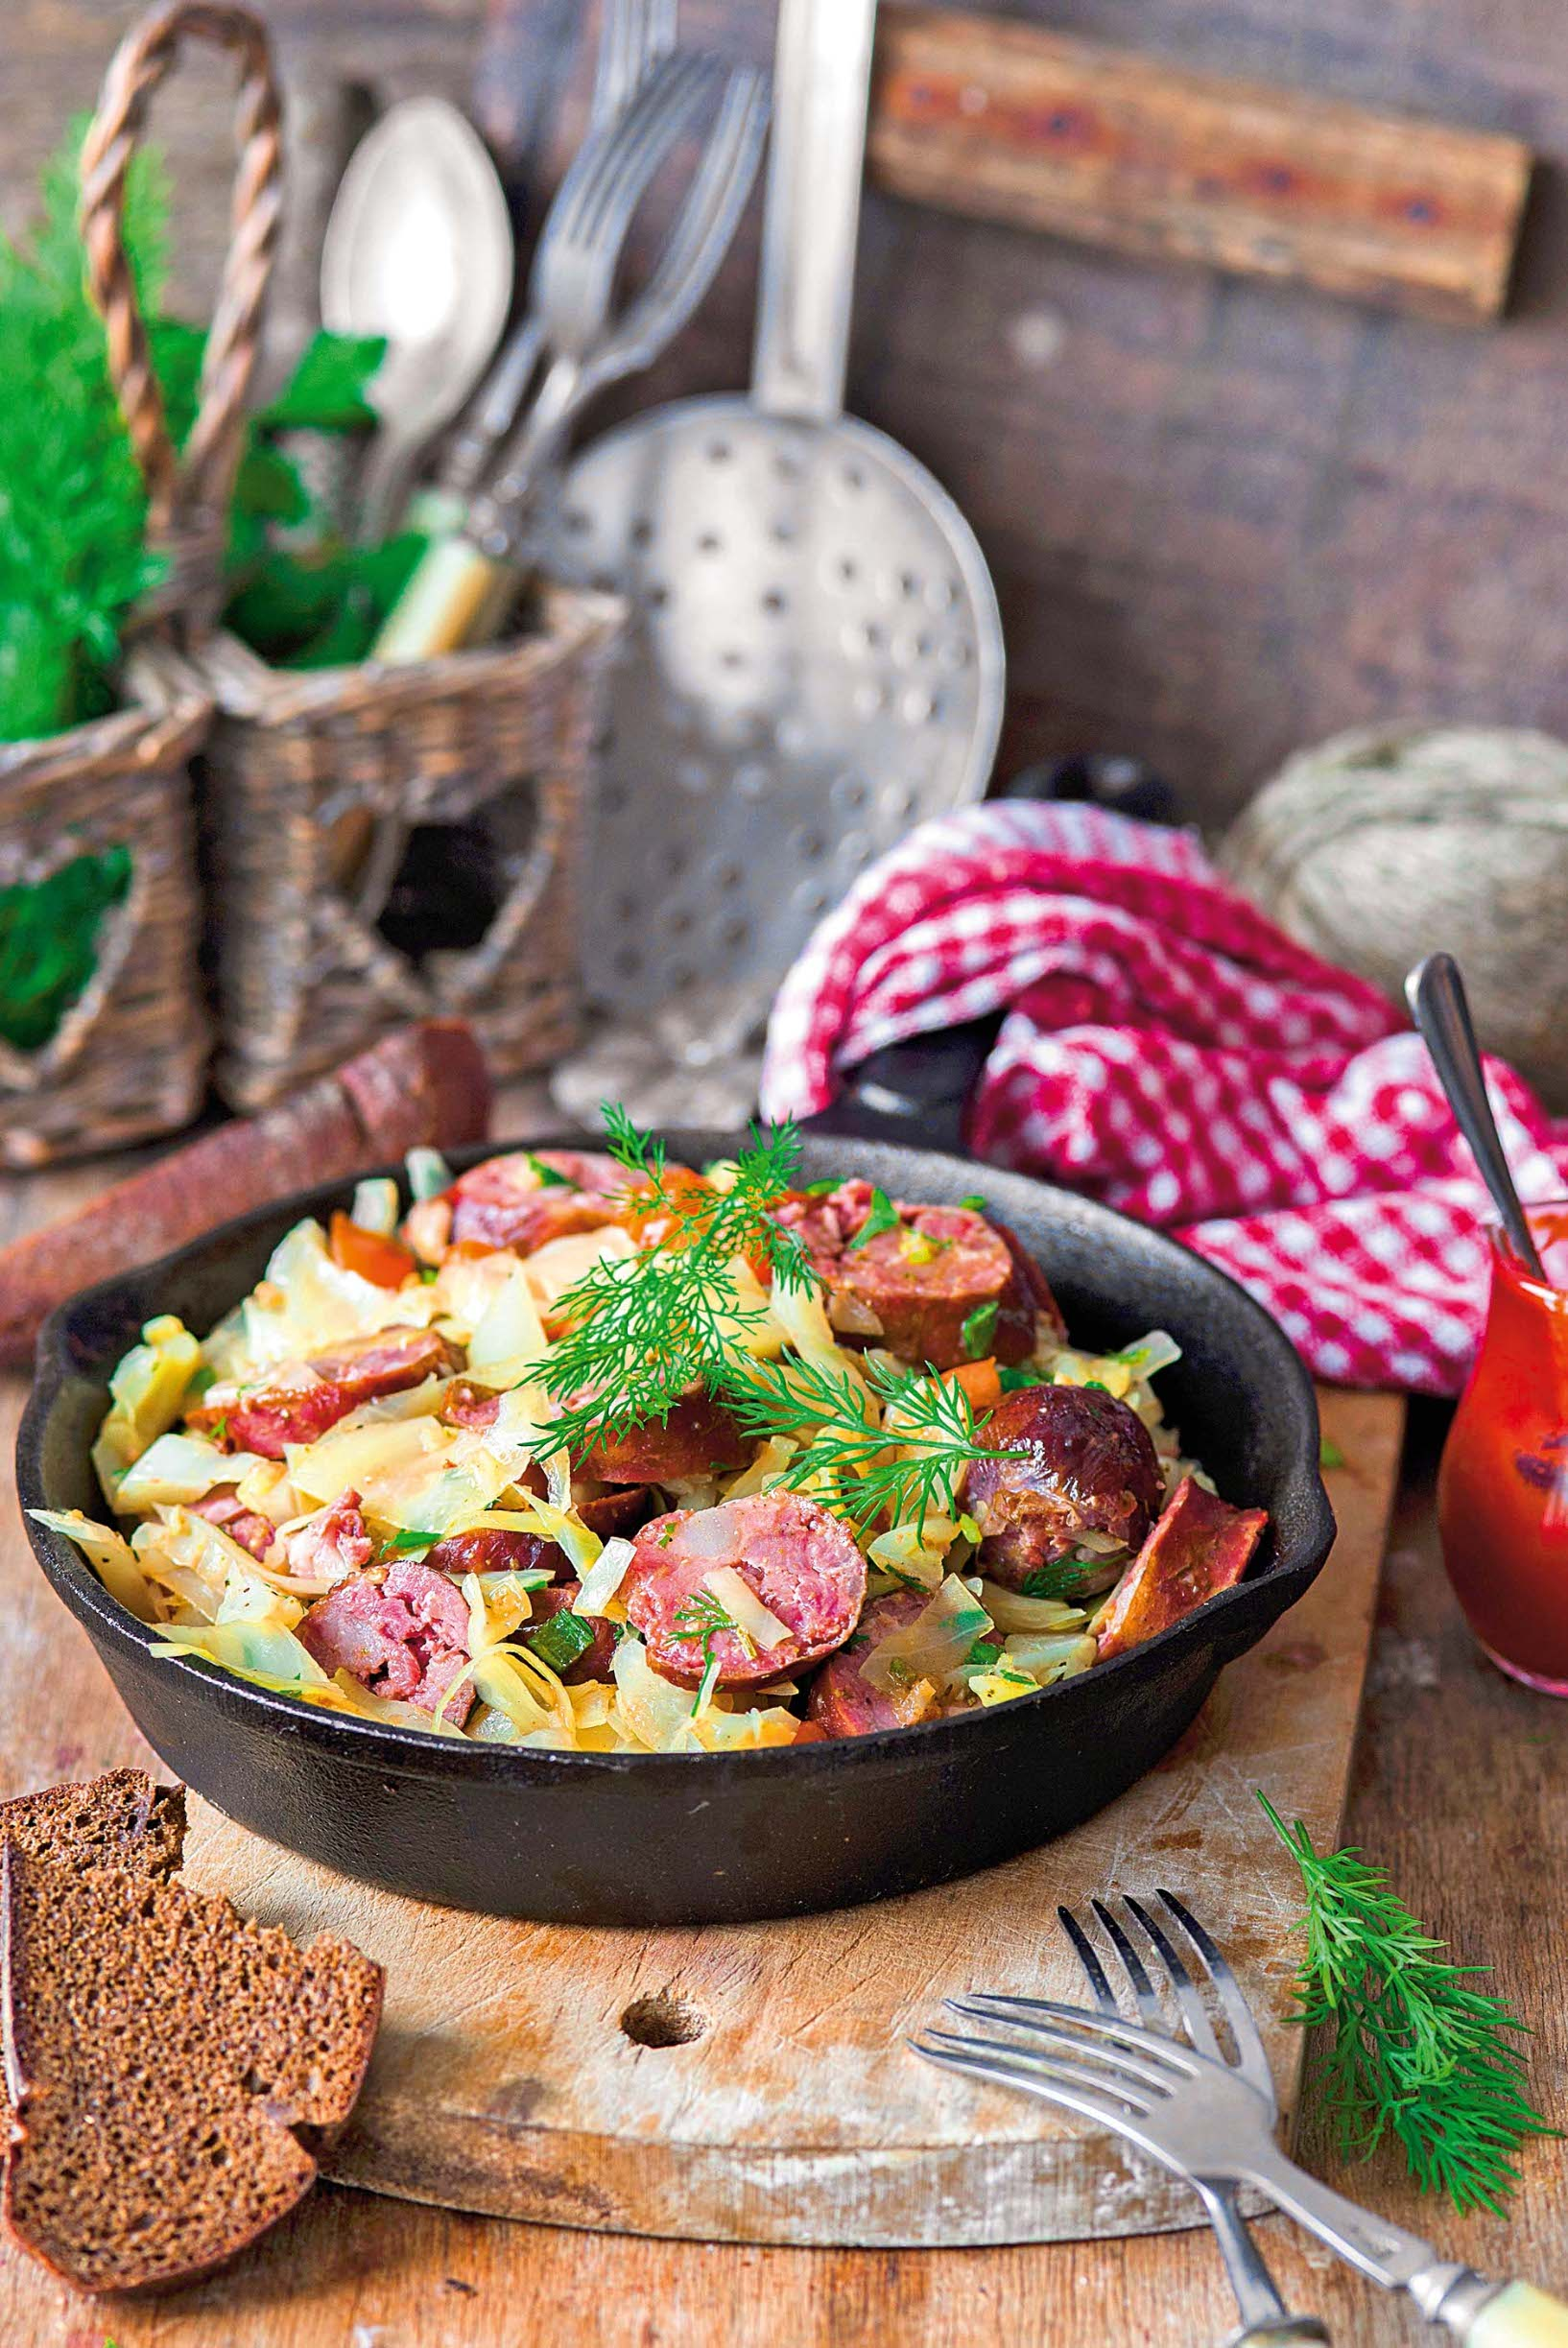 StockFood-12295115-HiRes-Cabbage-stewed-with-sausage